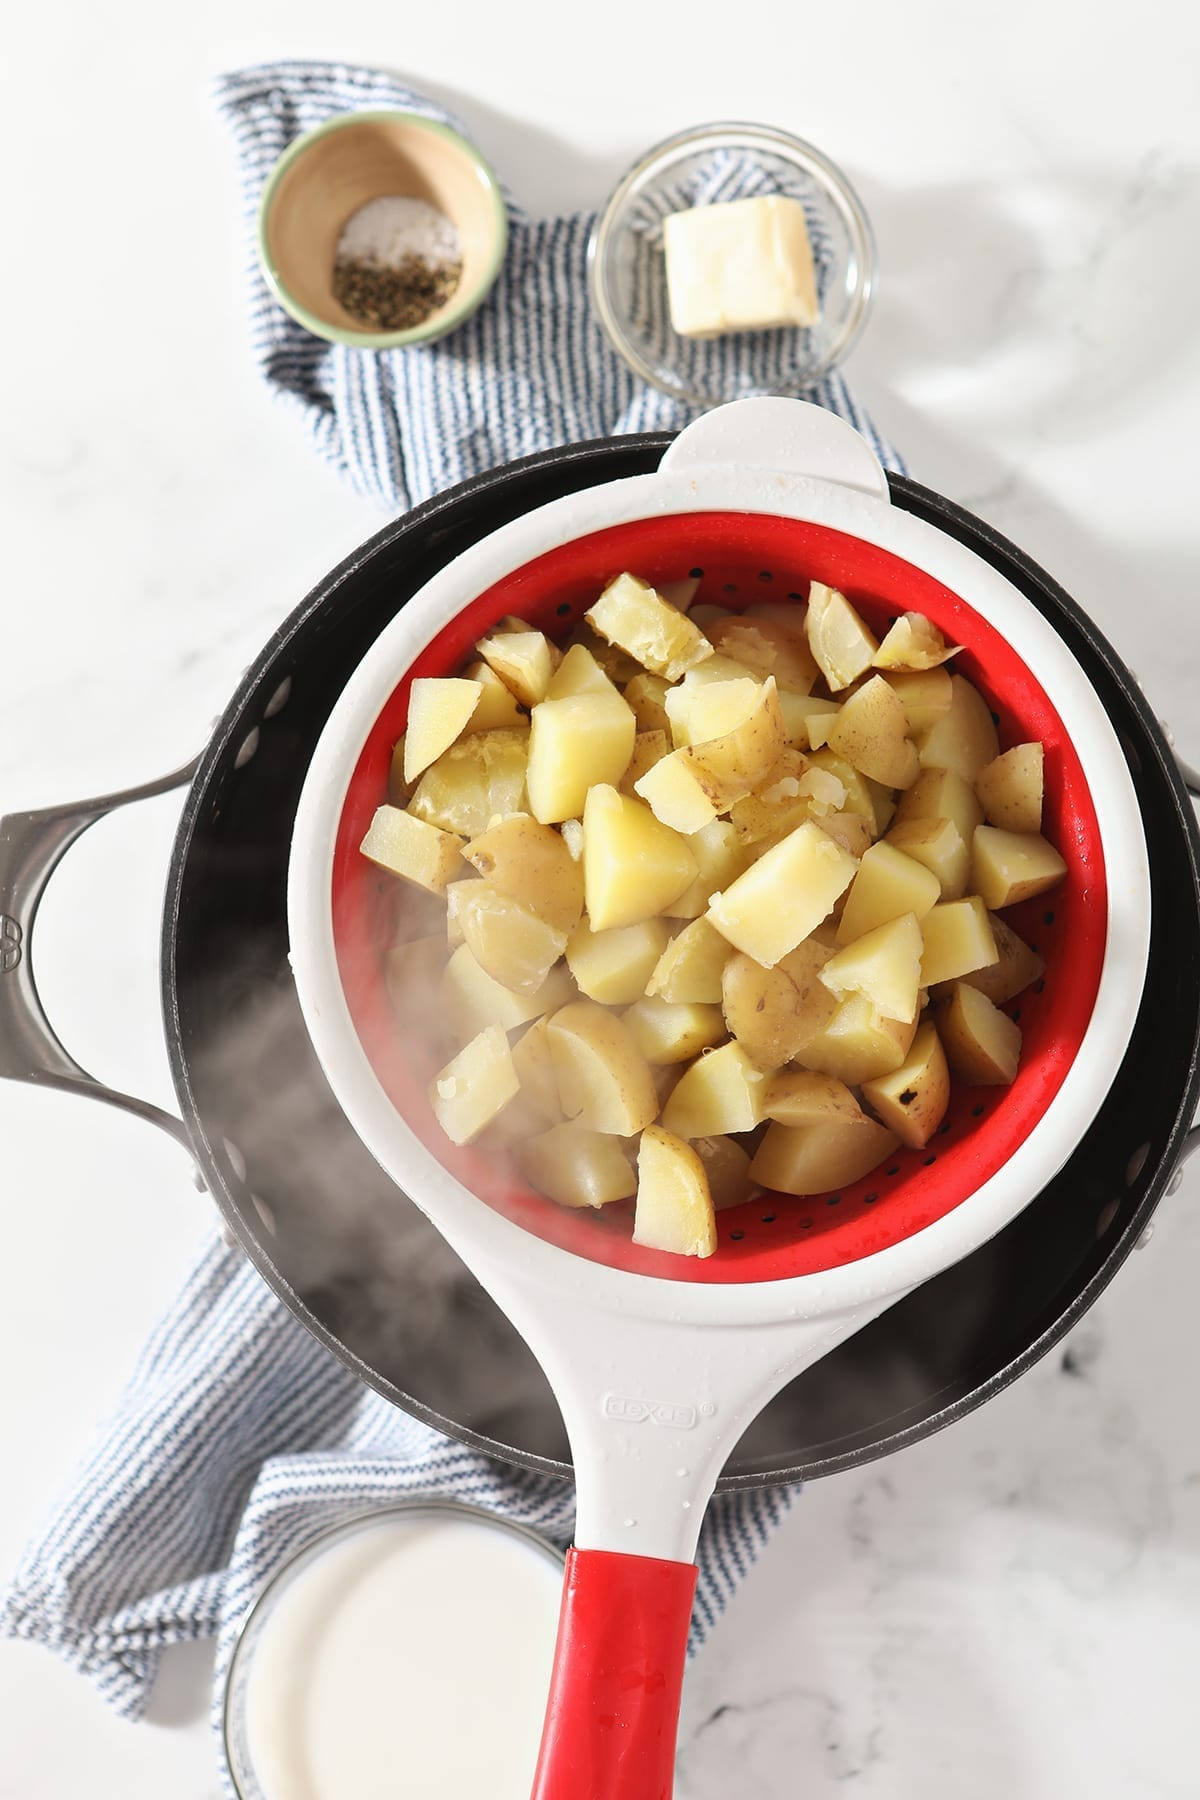 Steam streams off recently boiled potatoes in a red and white colander